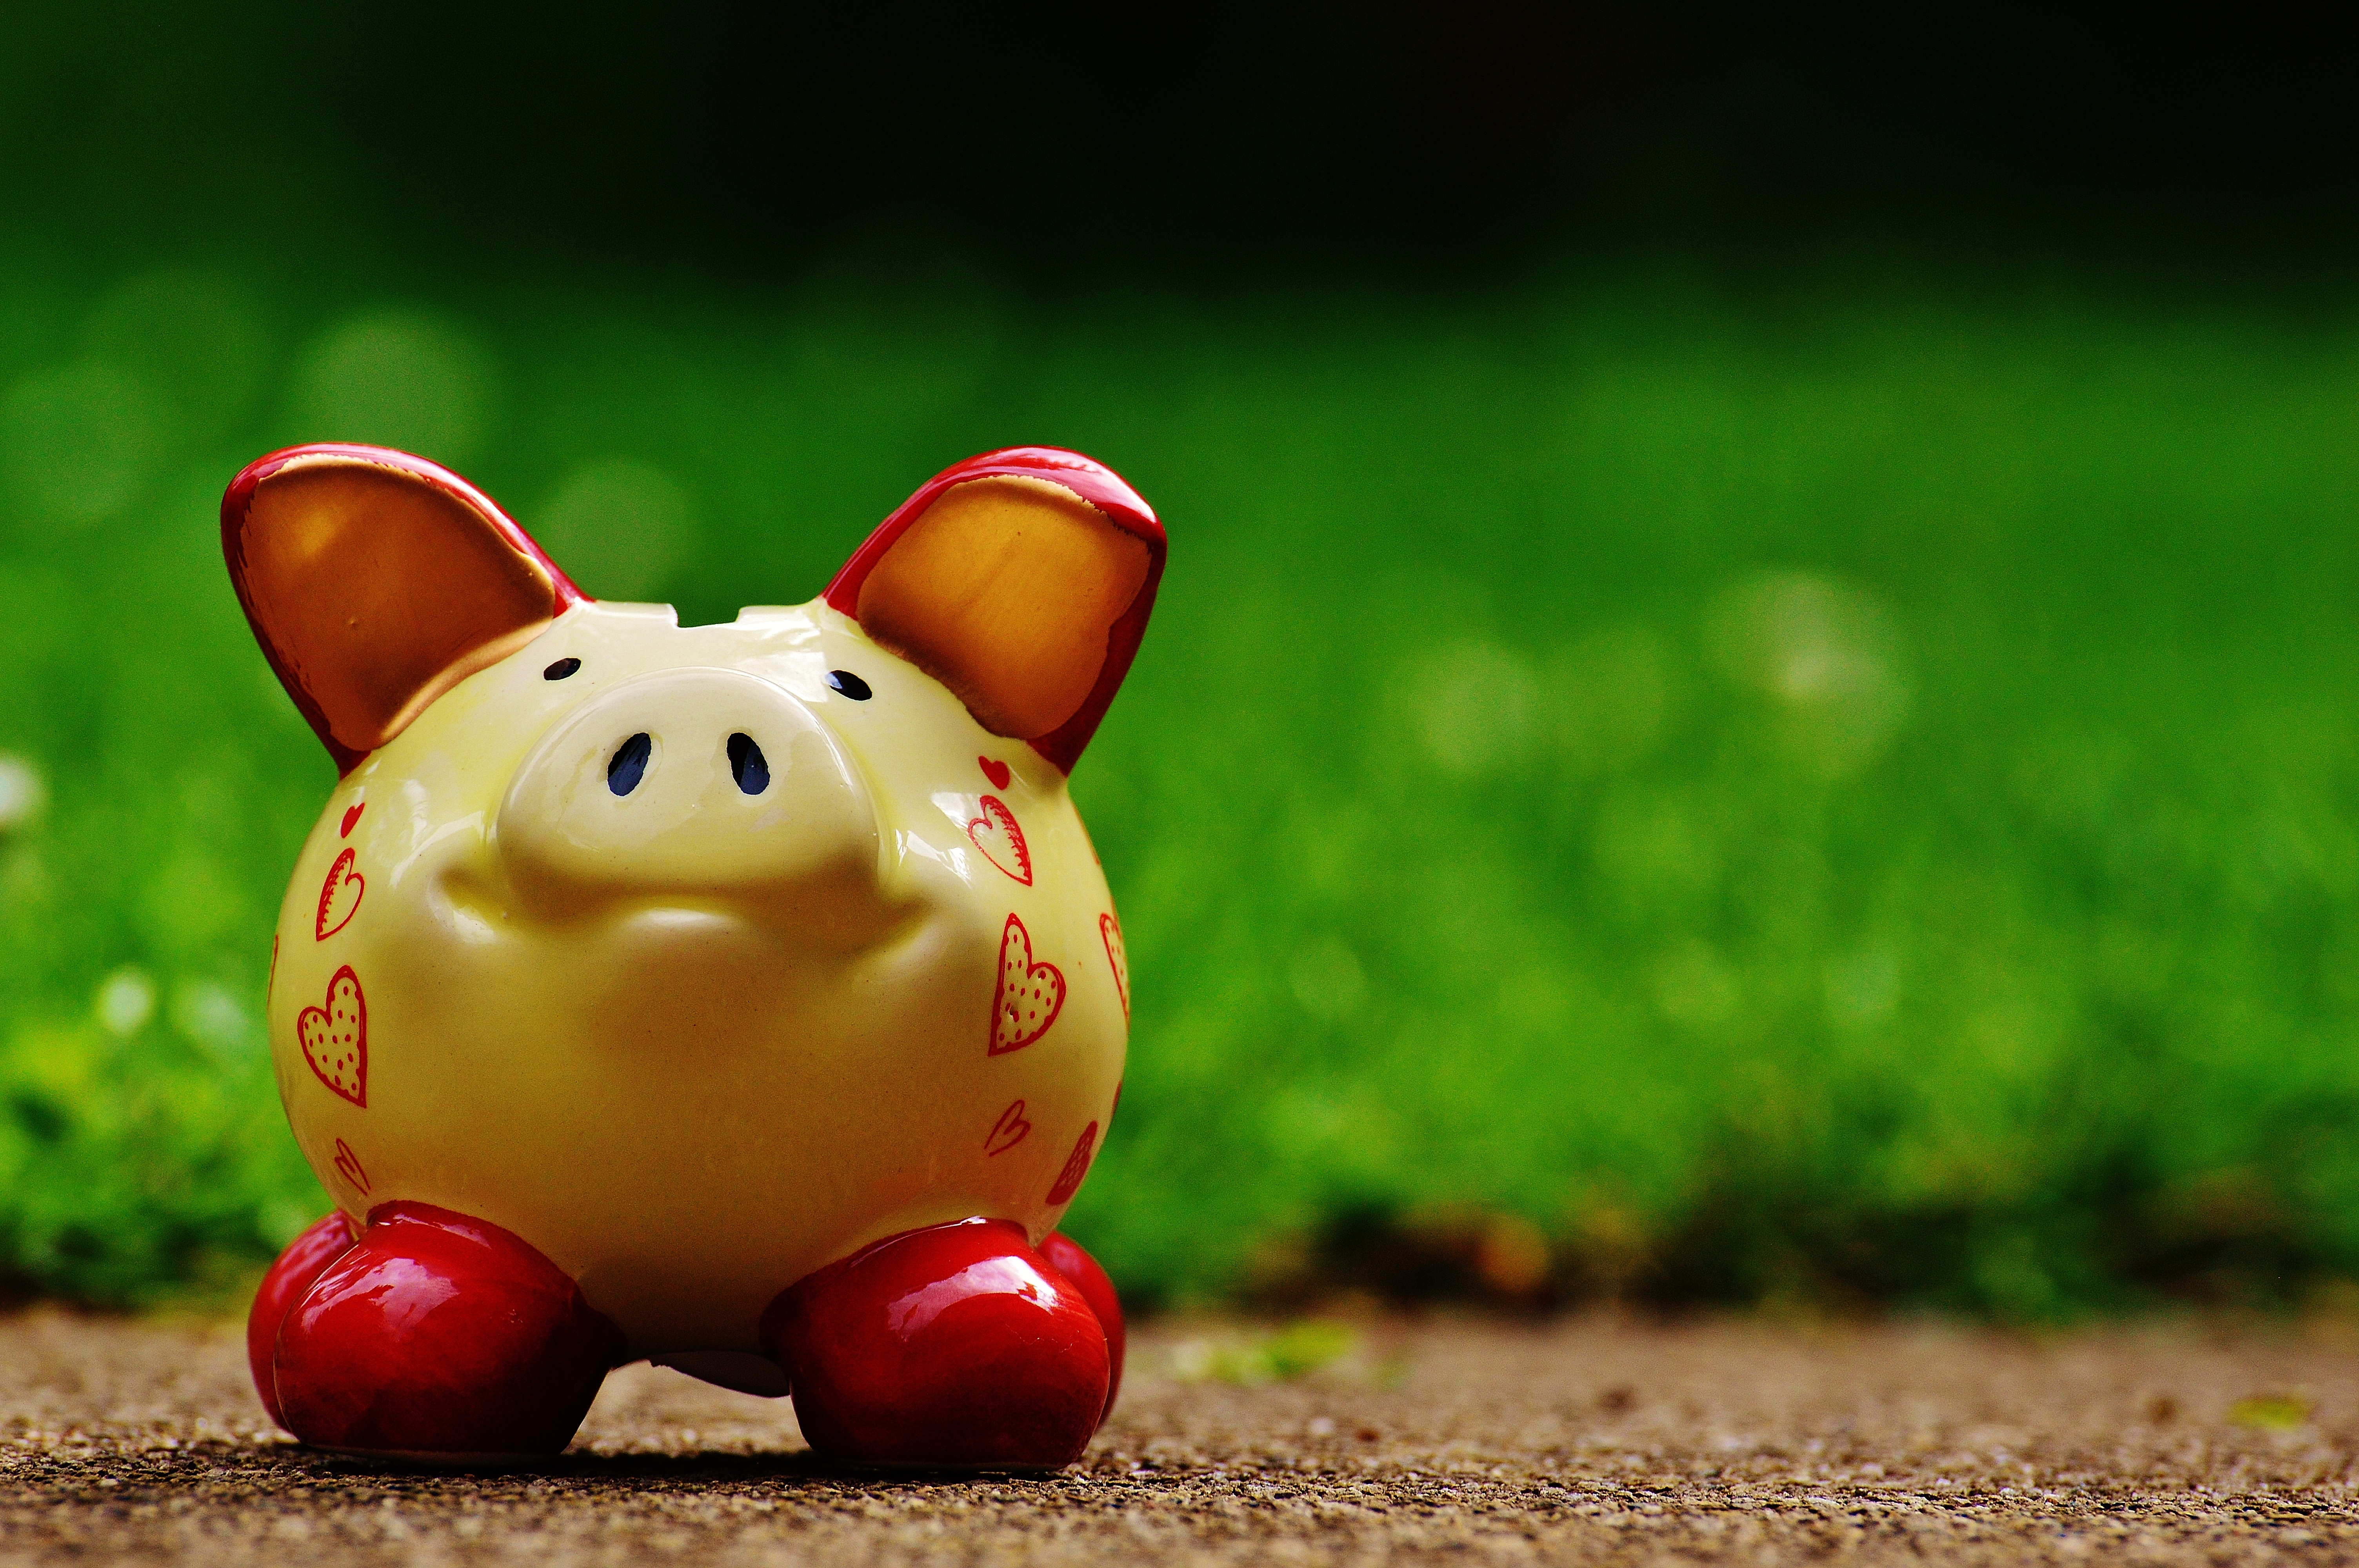 Making A Mountain Out Of A Molehill With Your Savings